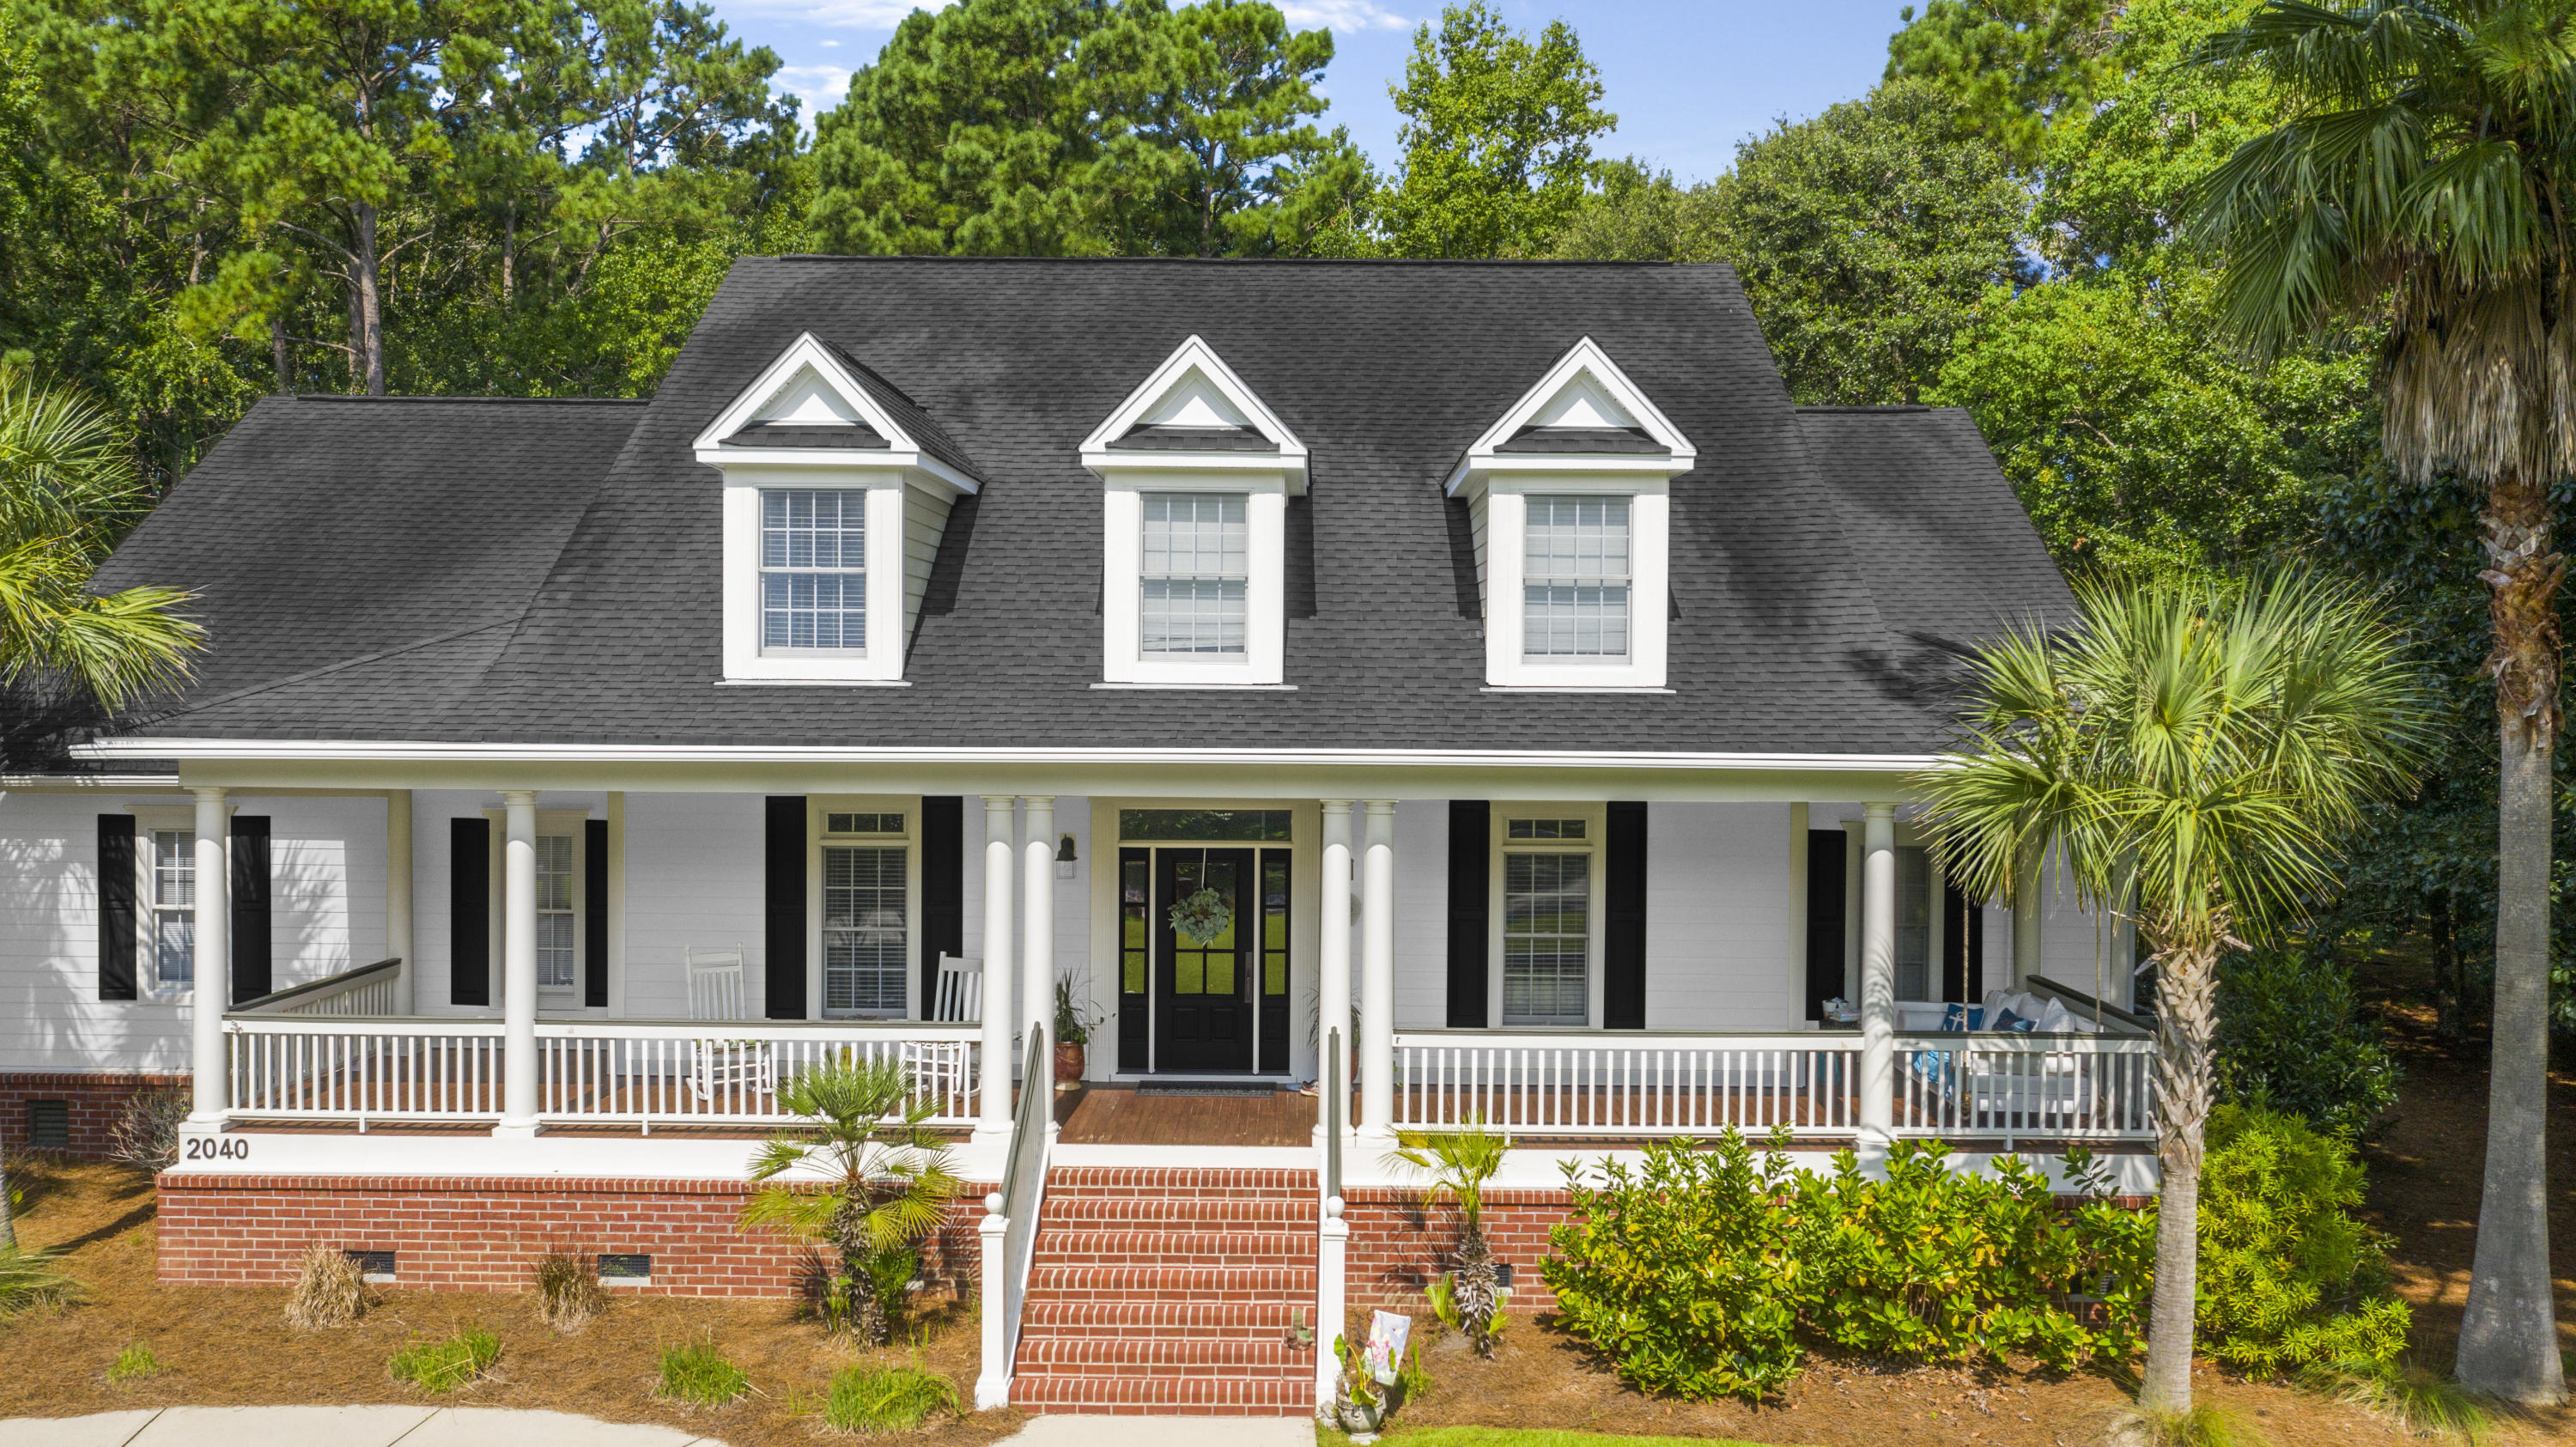 Dunes West Homes For Sale - 2040 Shell Ring, Mount Pleasant, SC - 70